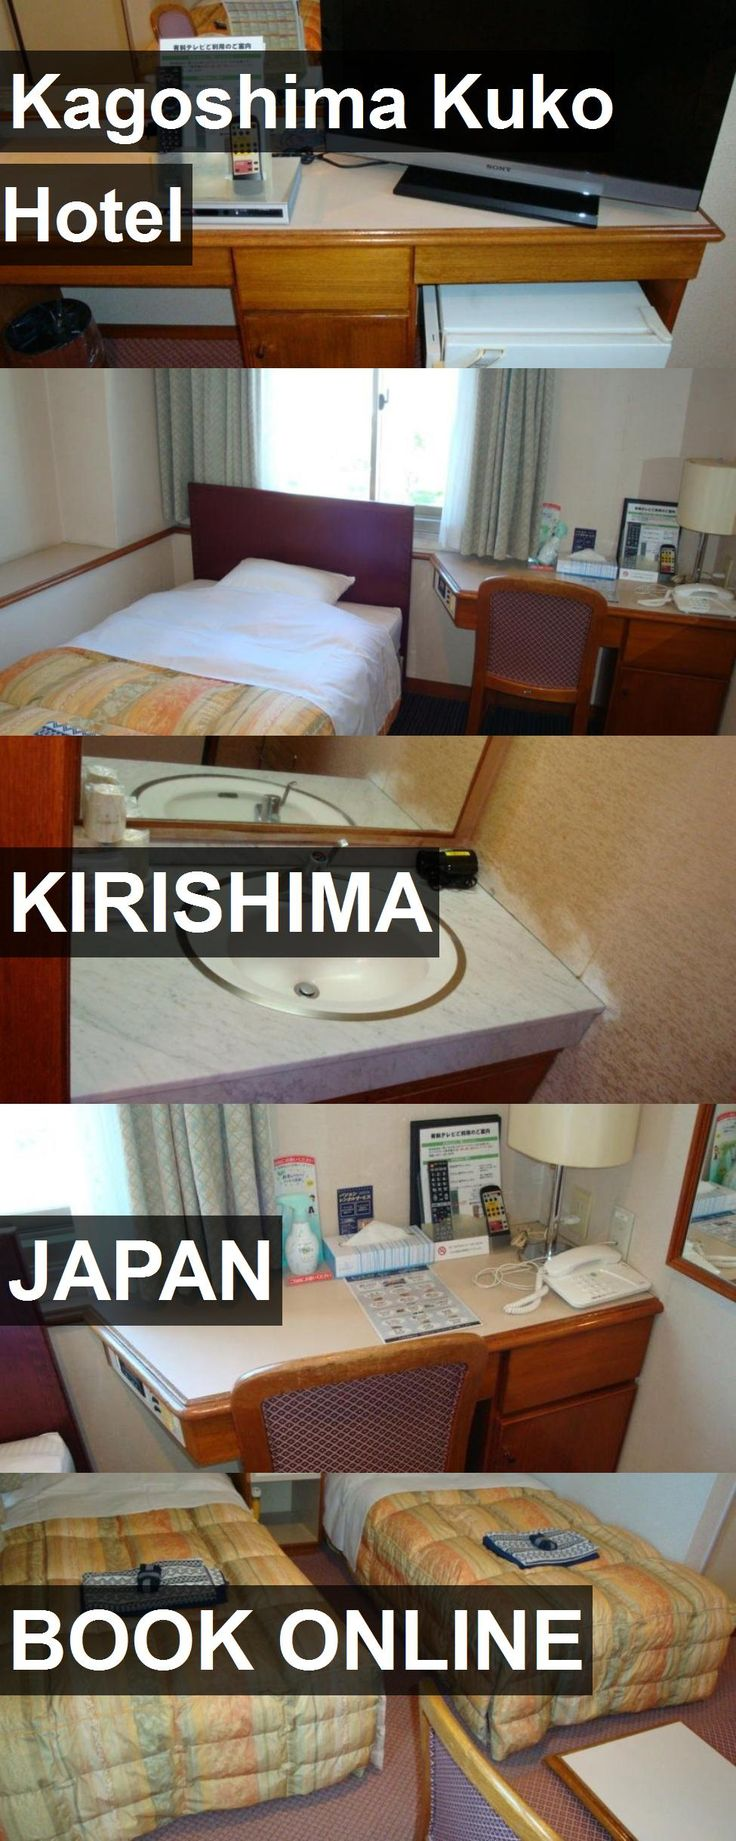 Hotel Kagoshima Kuko Hotel in Kirishima, Japan. For more information, photos, reviews and best prices please follow the link. #Japan #Kirishima #KagoshimaKukoHotel #hotel #travel #vacation